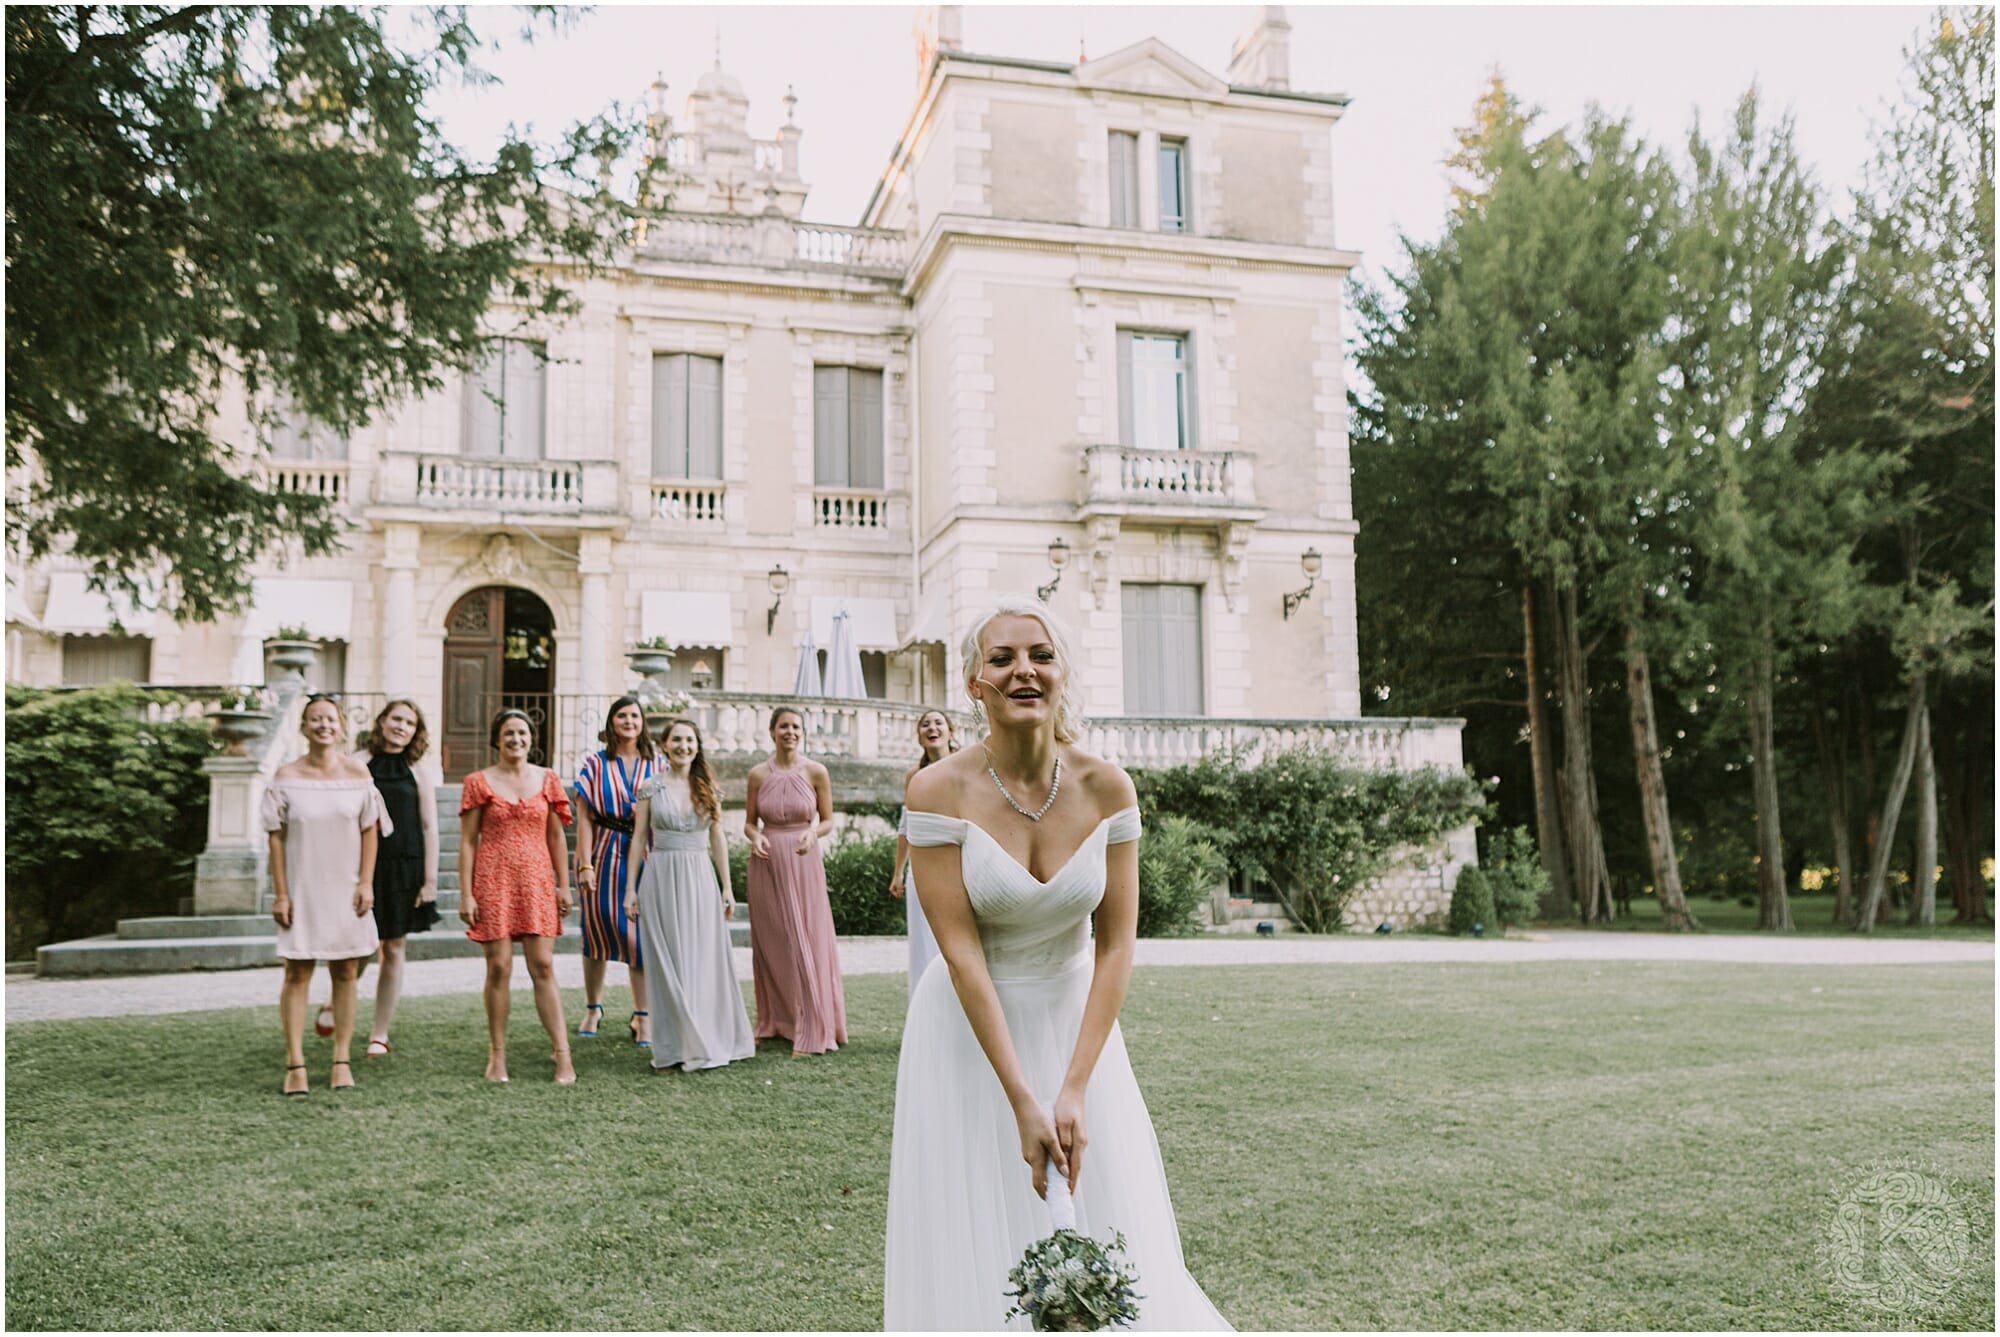 Kateryna-photos-photographe-mariage-chateau-des-3-fontaines-provence-avignon-vaucluse-sud_0079.jpg